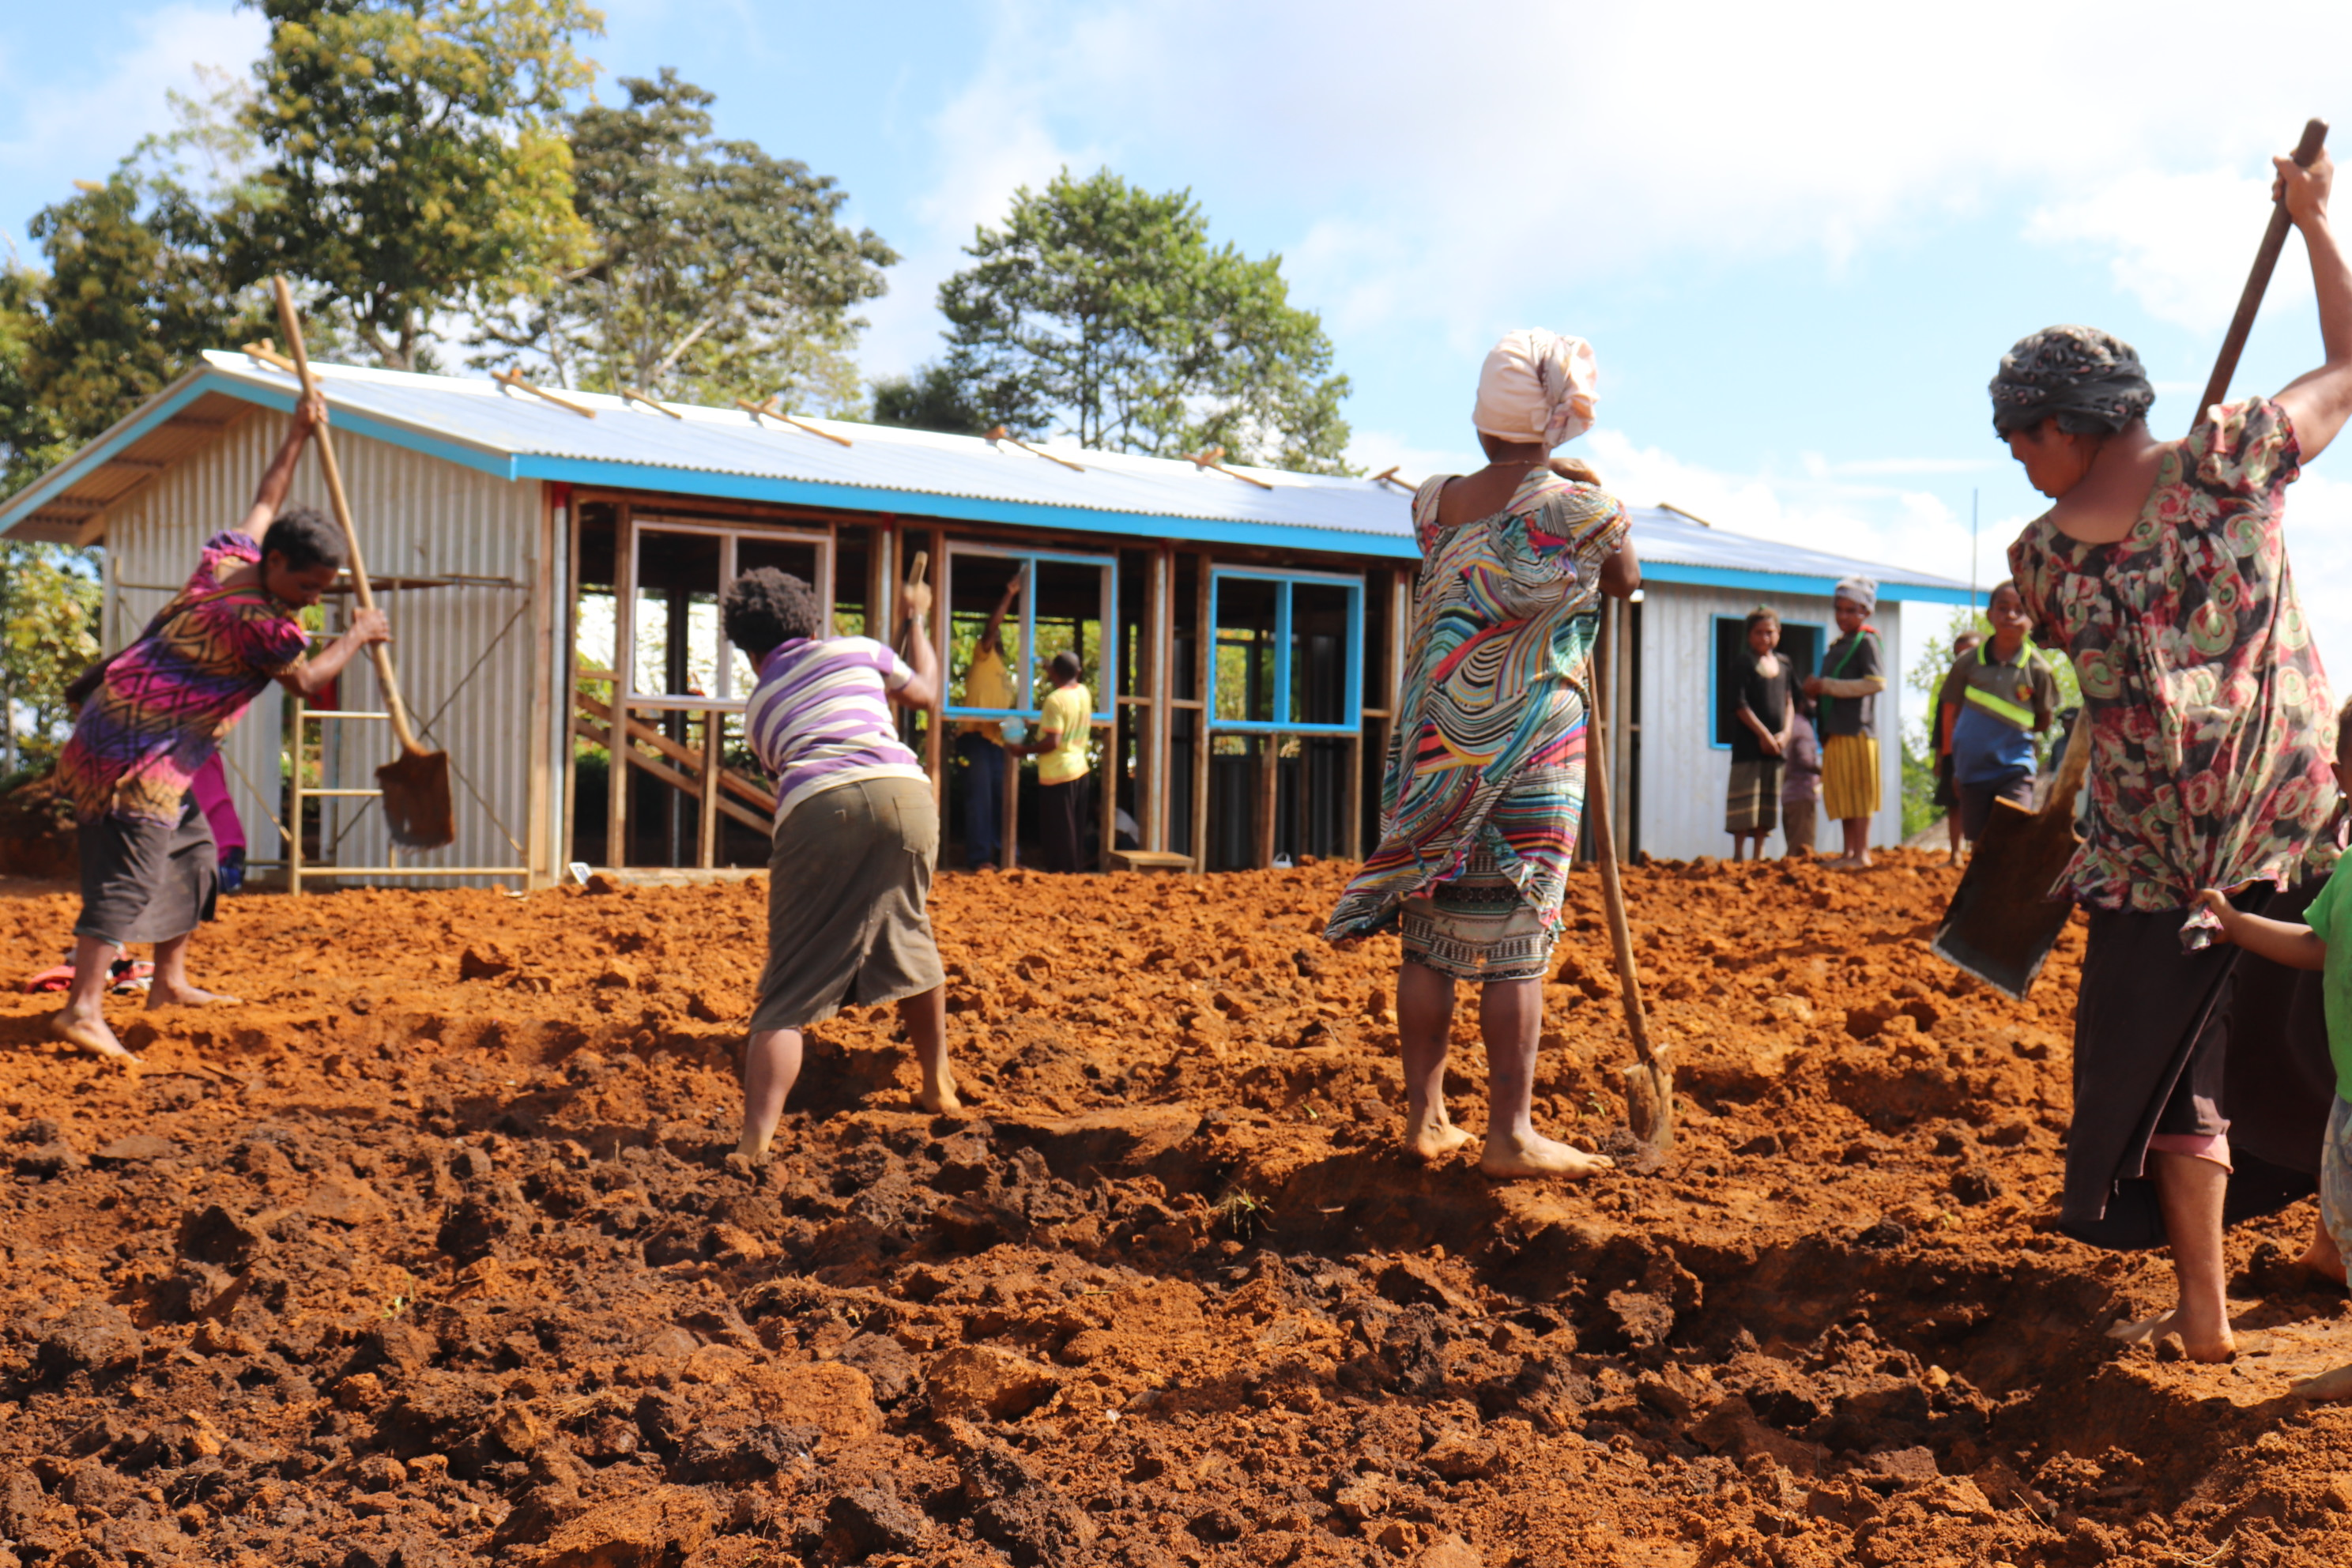 Women digging in field to prepare for building construction.